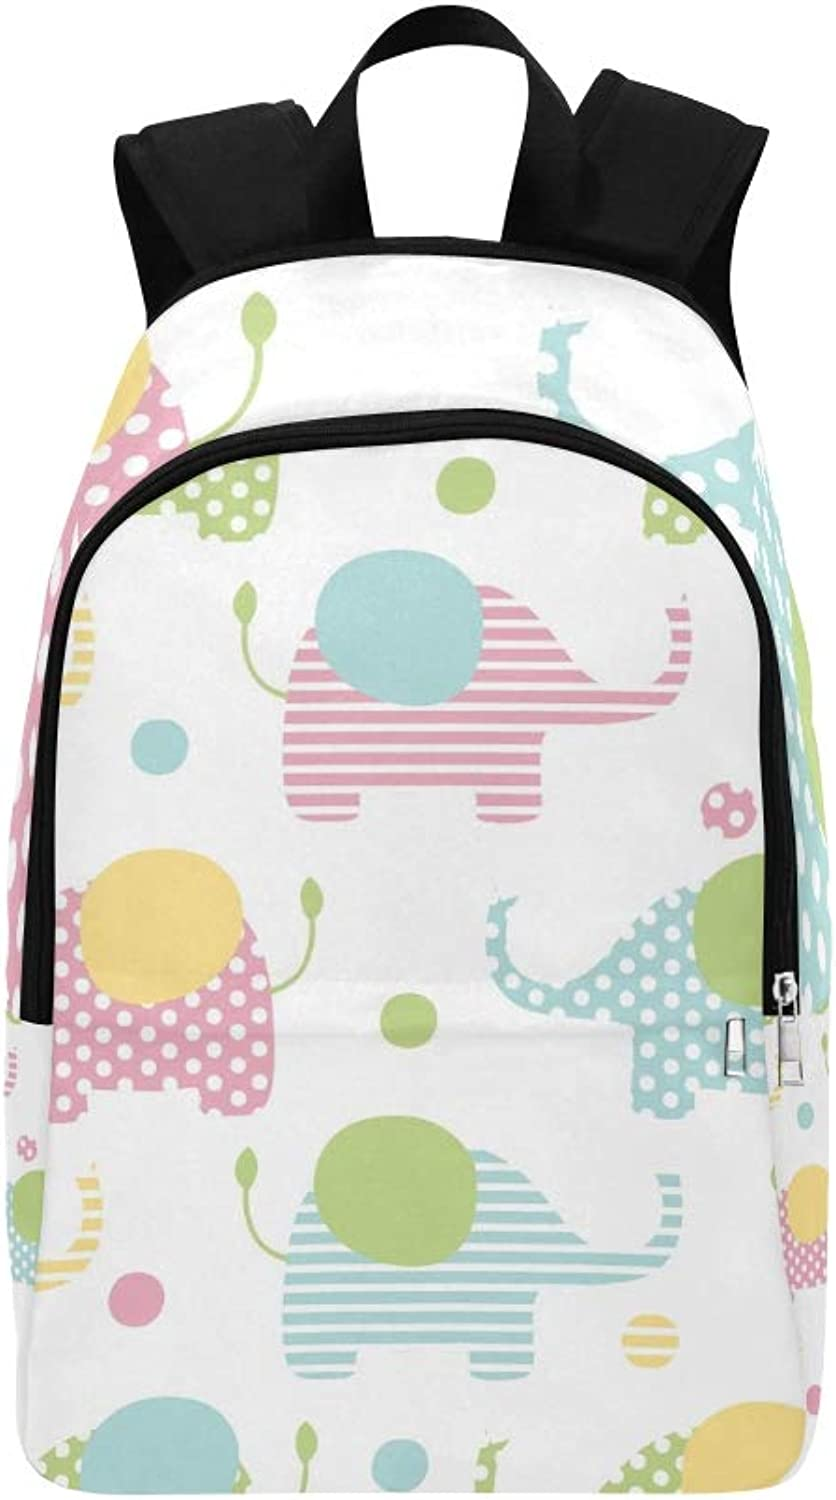 Cute Elephants Pastel colors Casual Daypack Travel Bag College School Backpack for Mens and Women